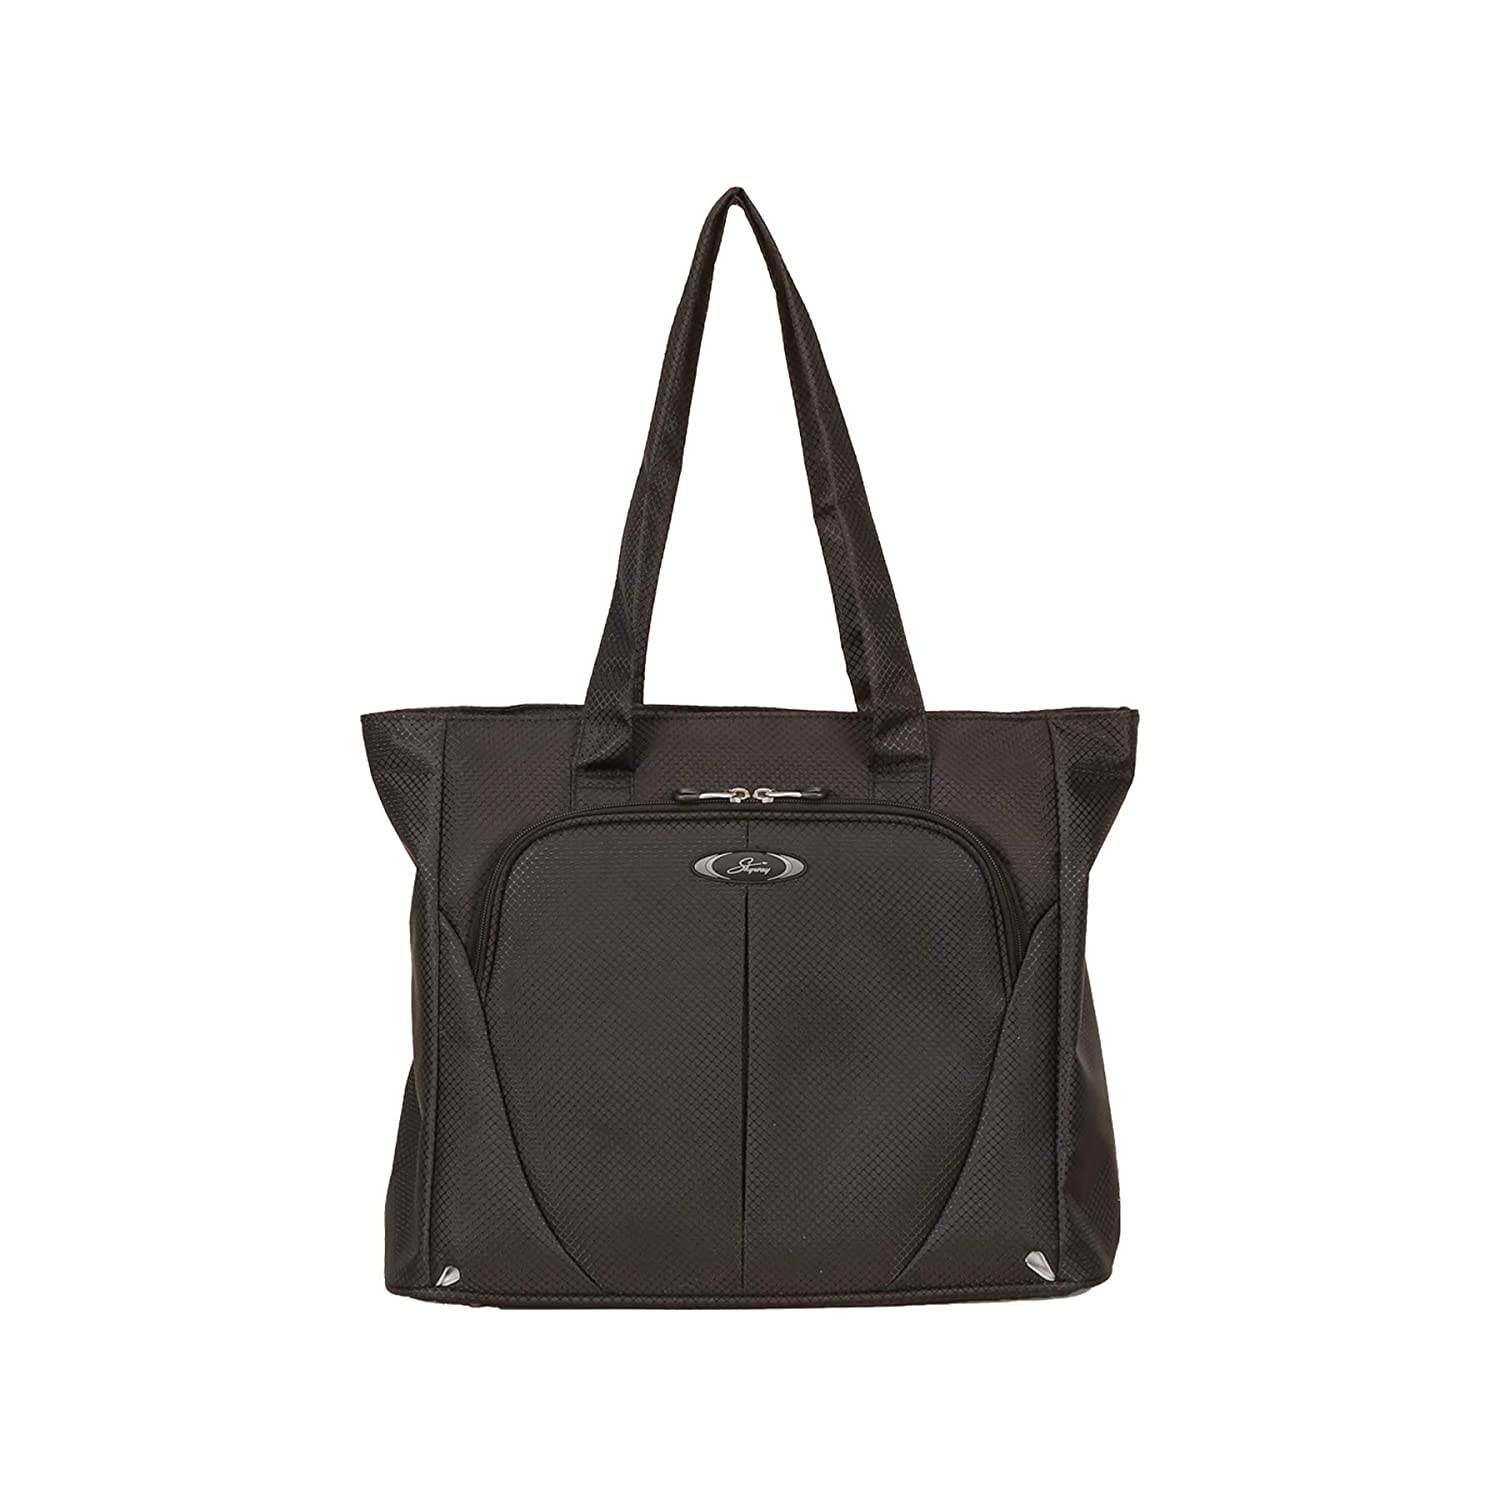 Black Skyway Luggage Mirage Superlight 18 Inch Shopper Tote One Size